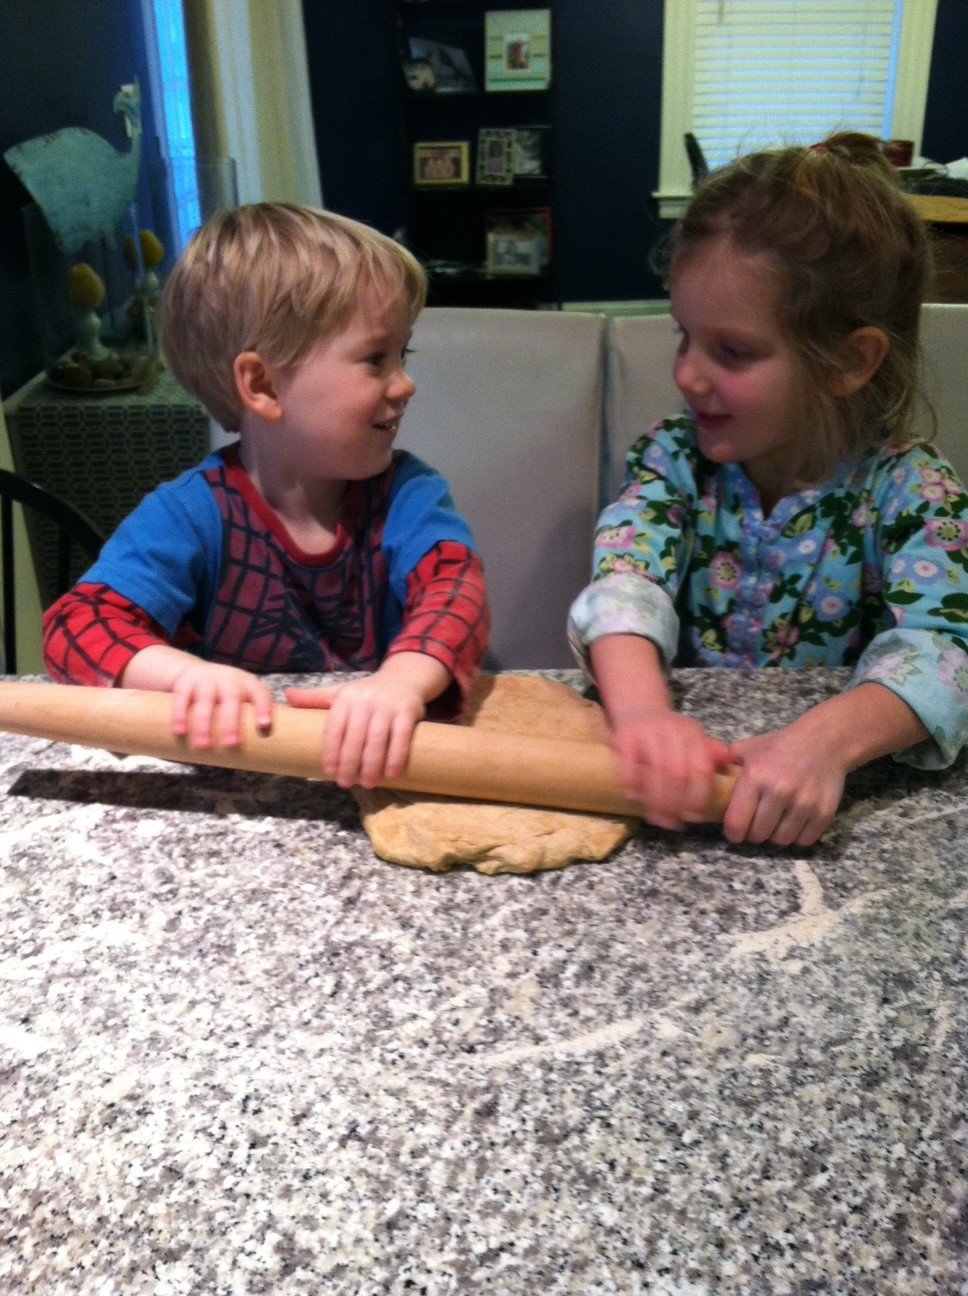 Liam and Maeve rolling out the homemade pizza dough.